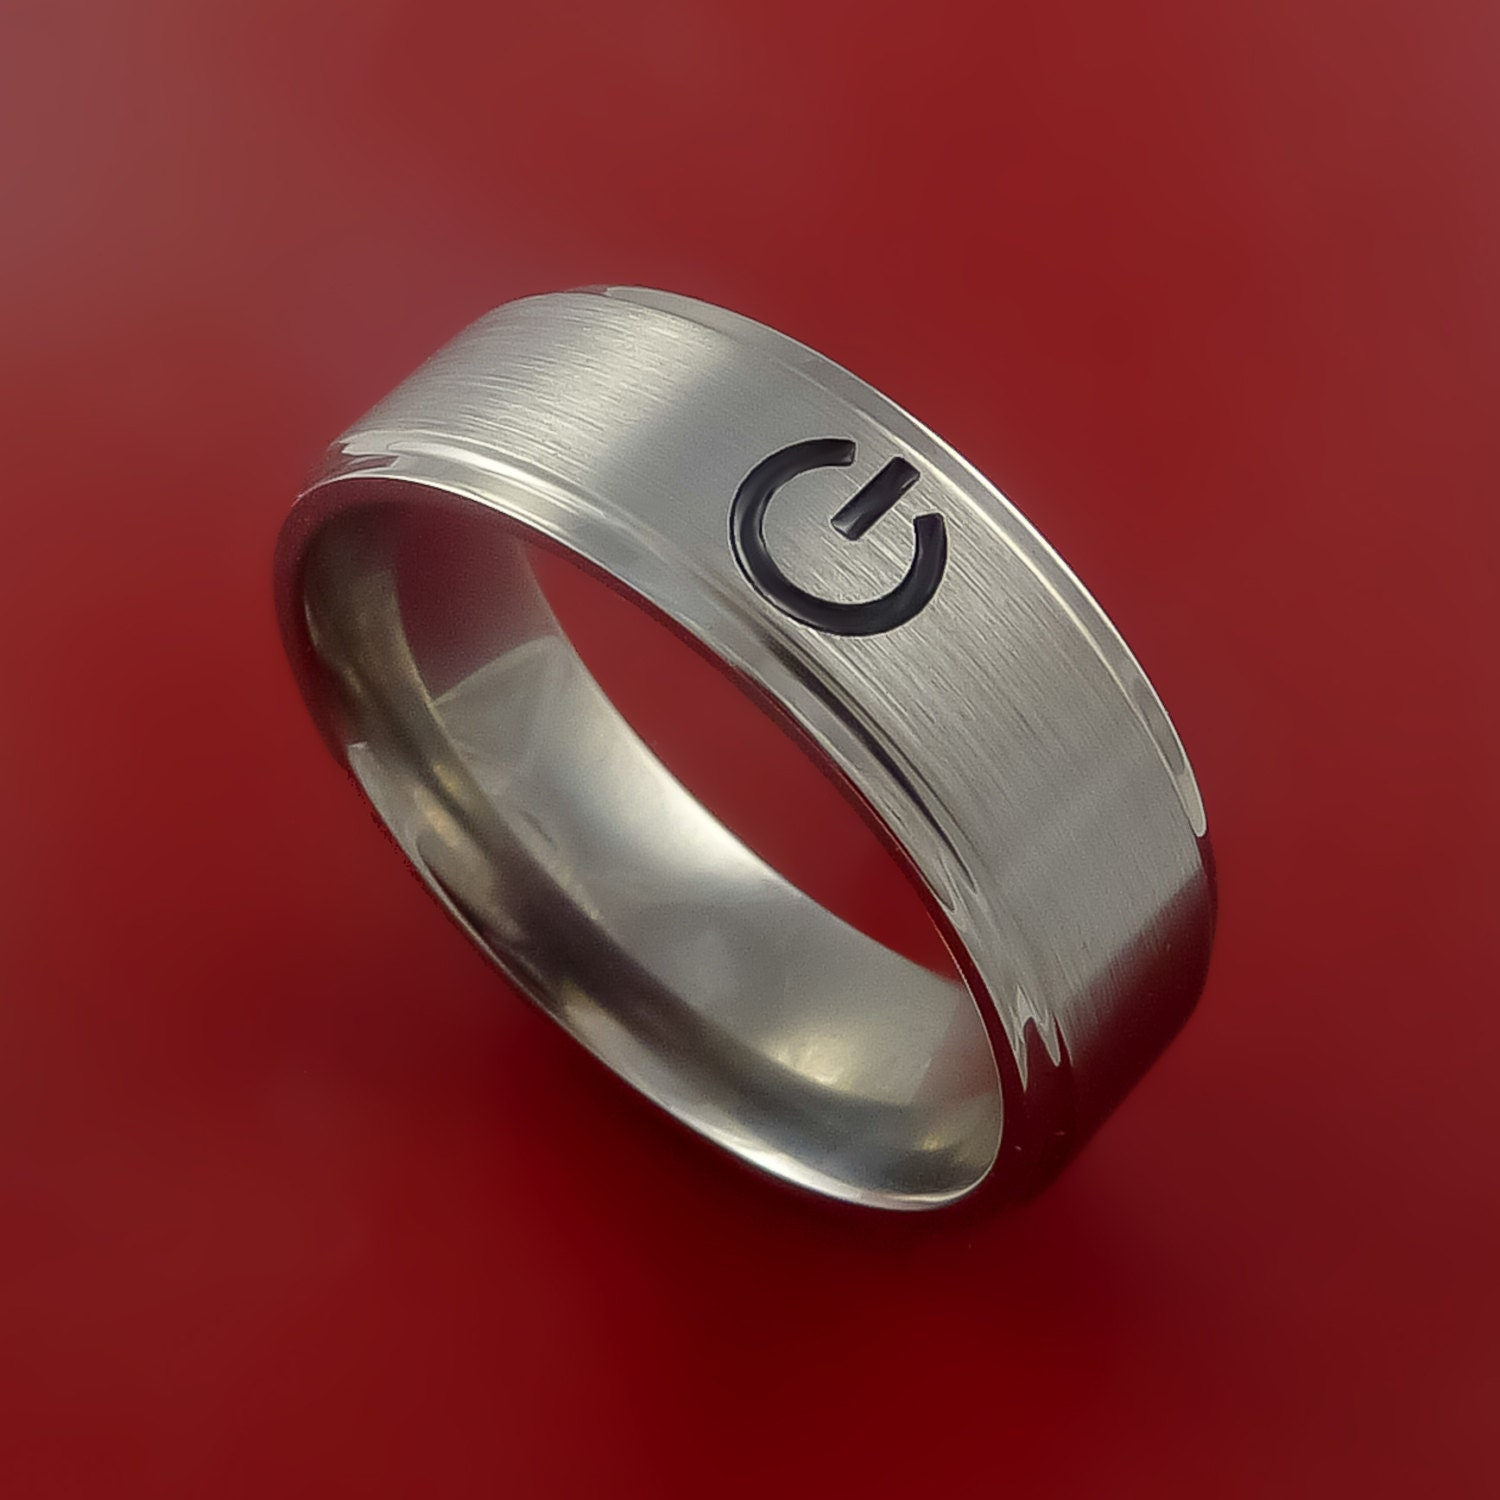 download geek design corners bands nerdy wedding rings ideas nice